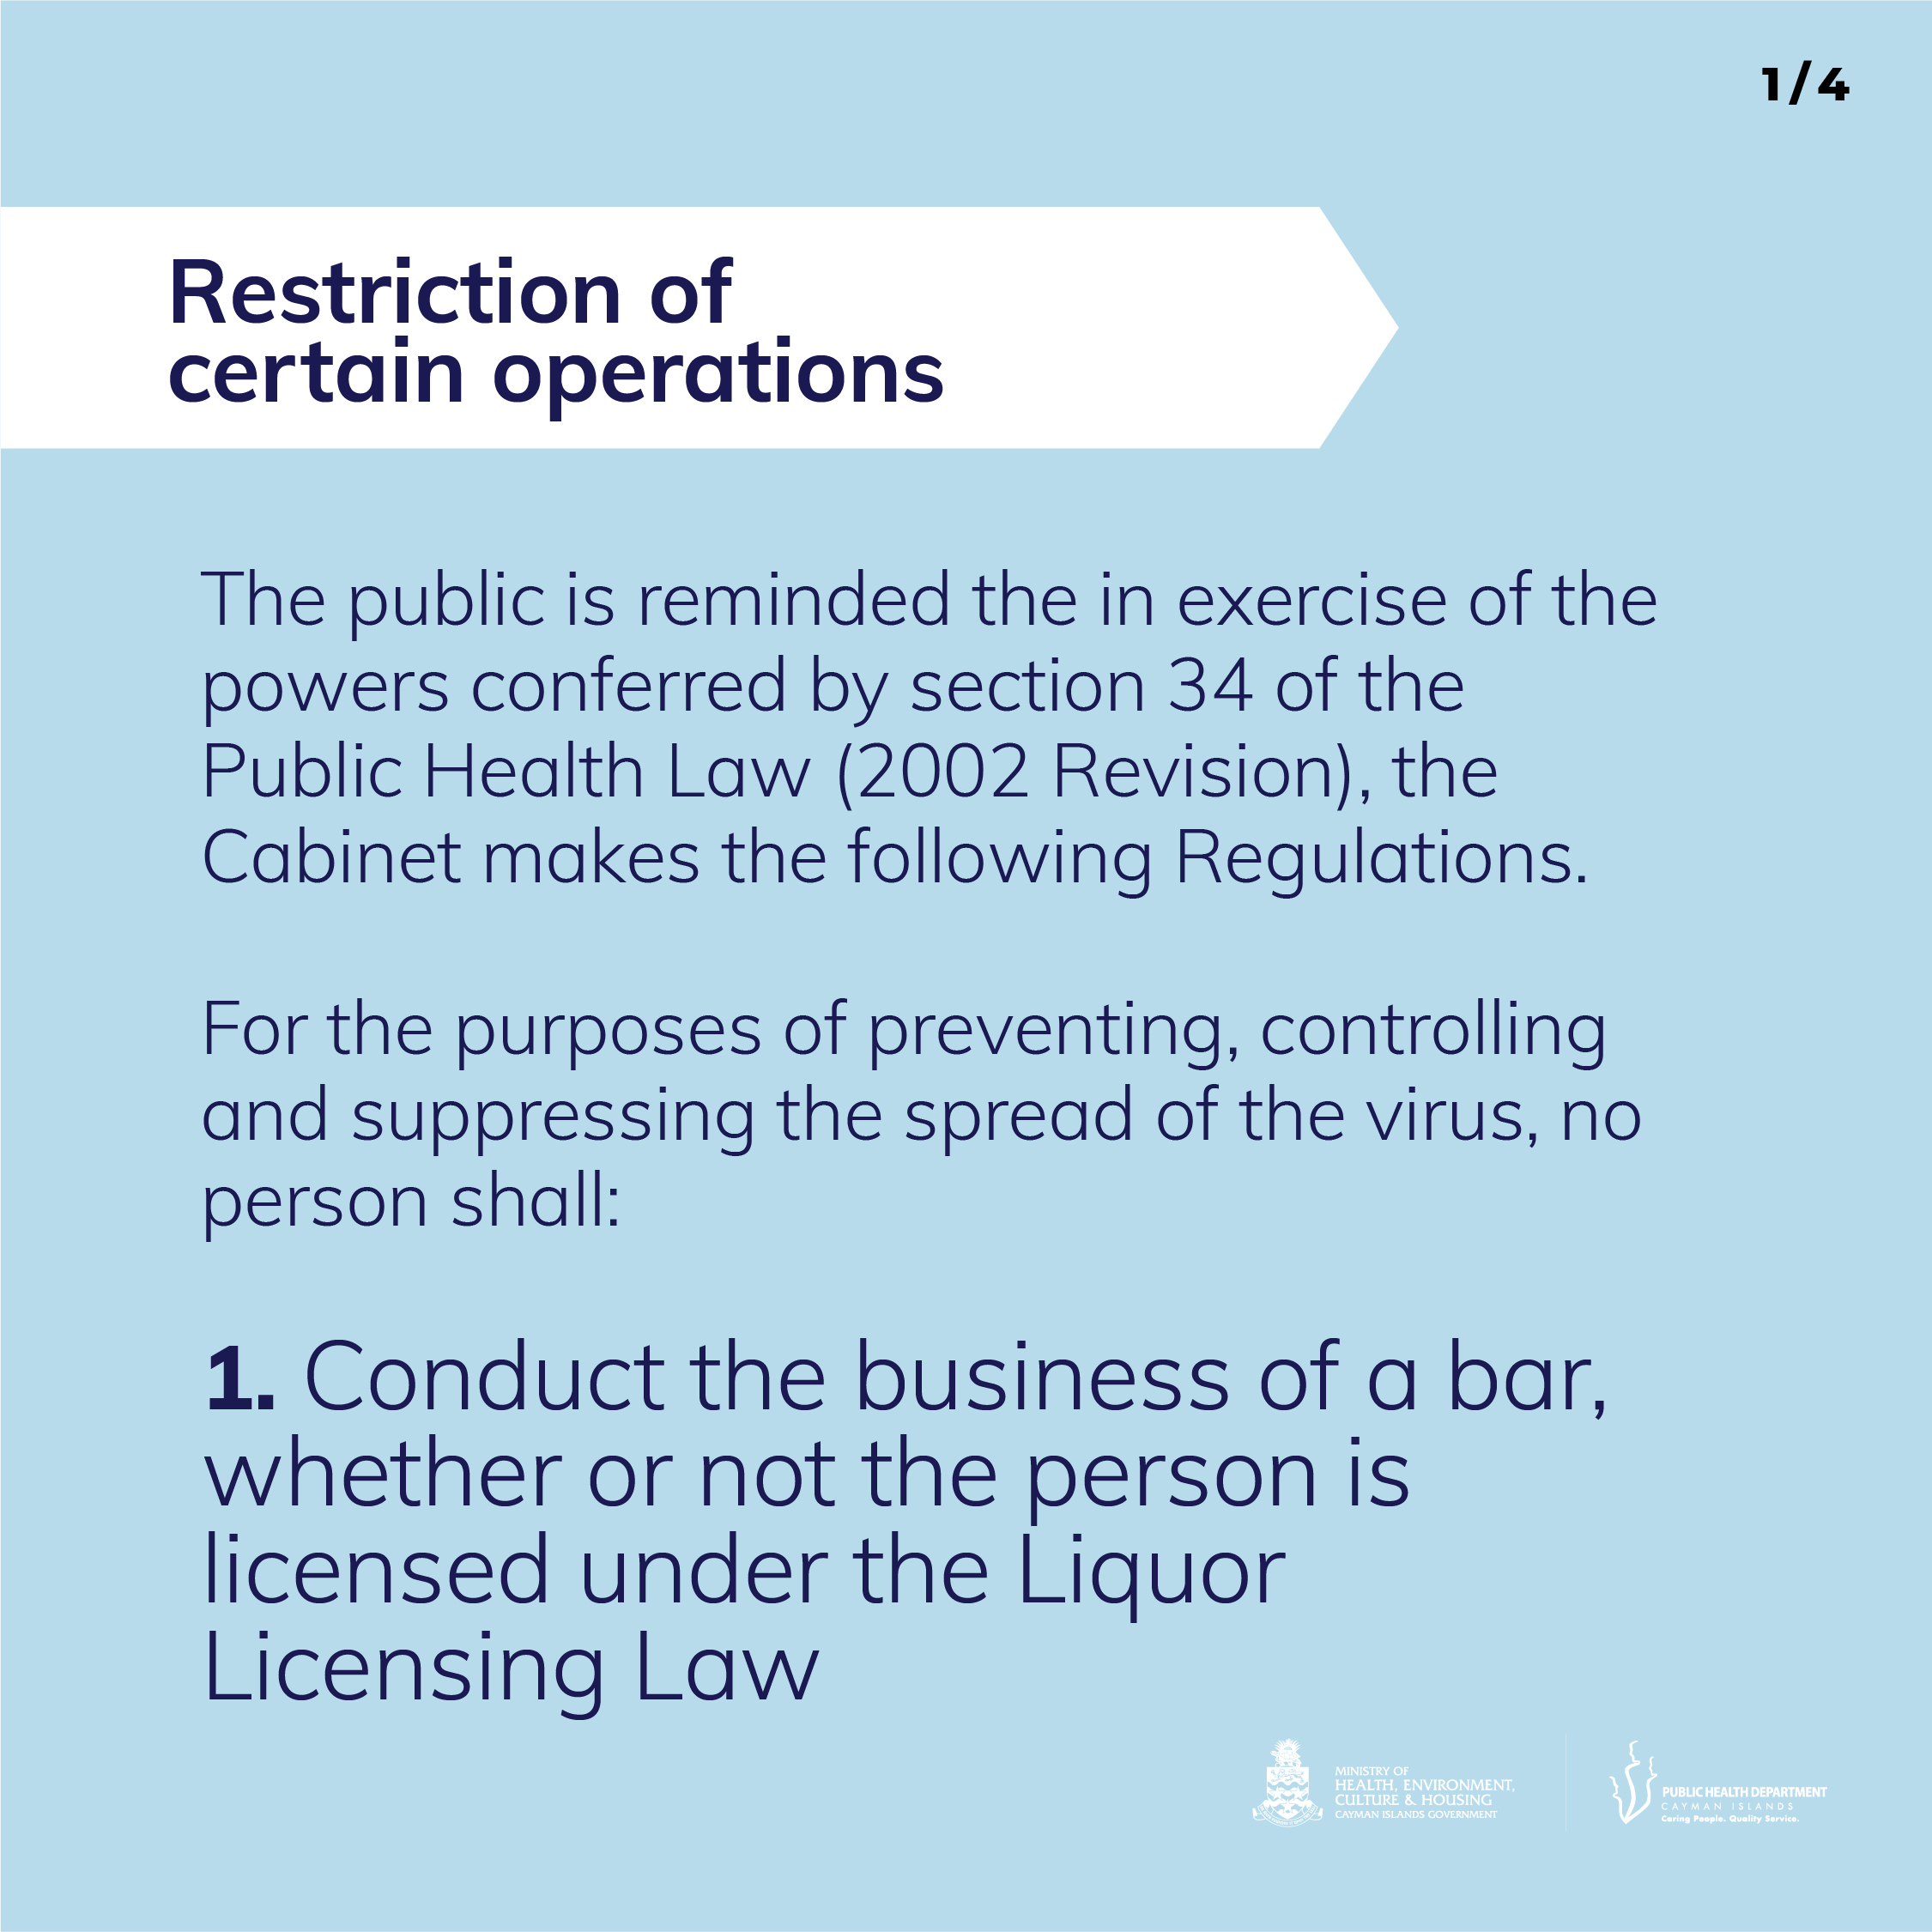 Business Restrictions 1 of 4